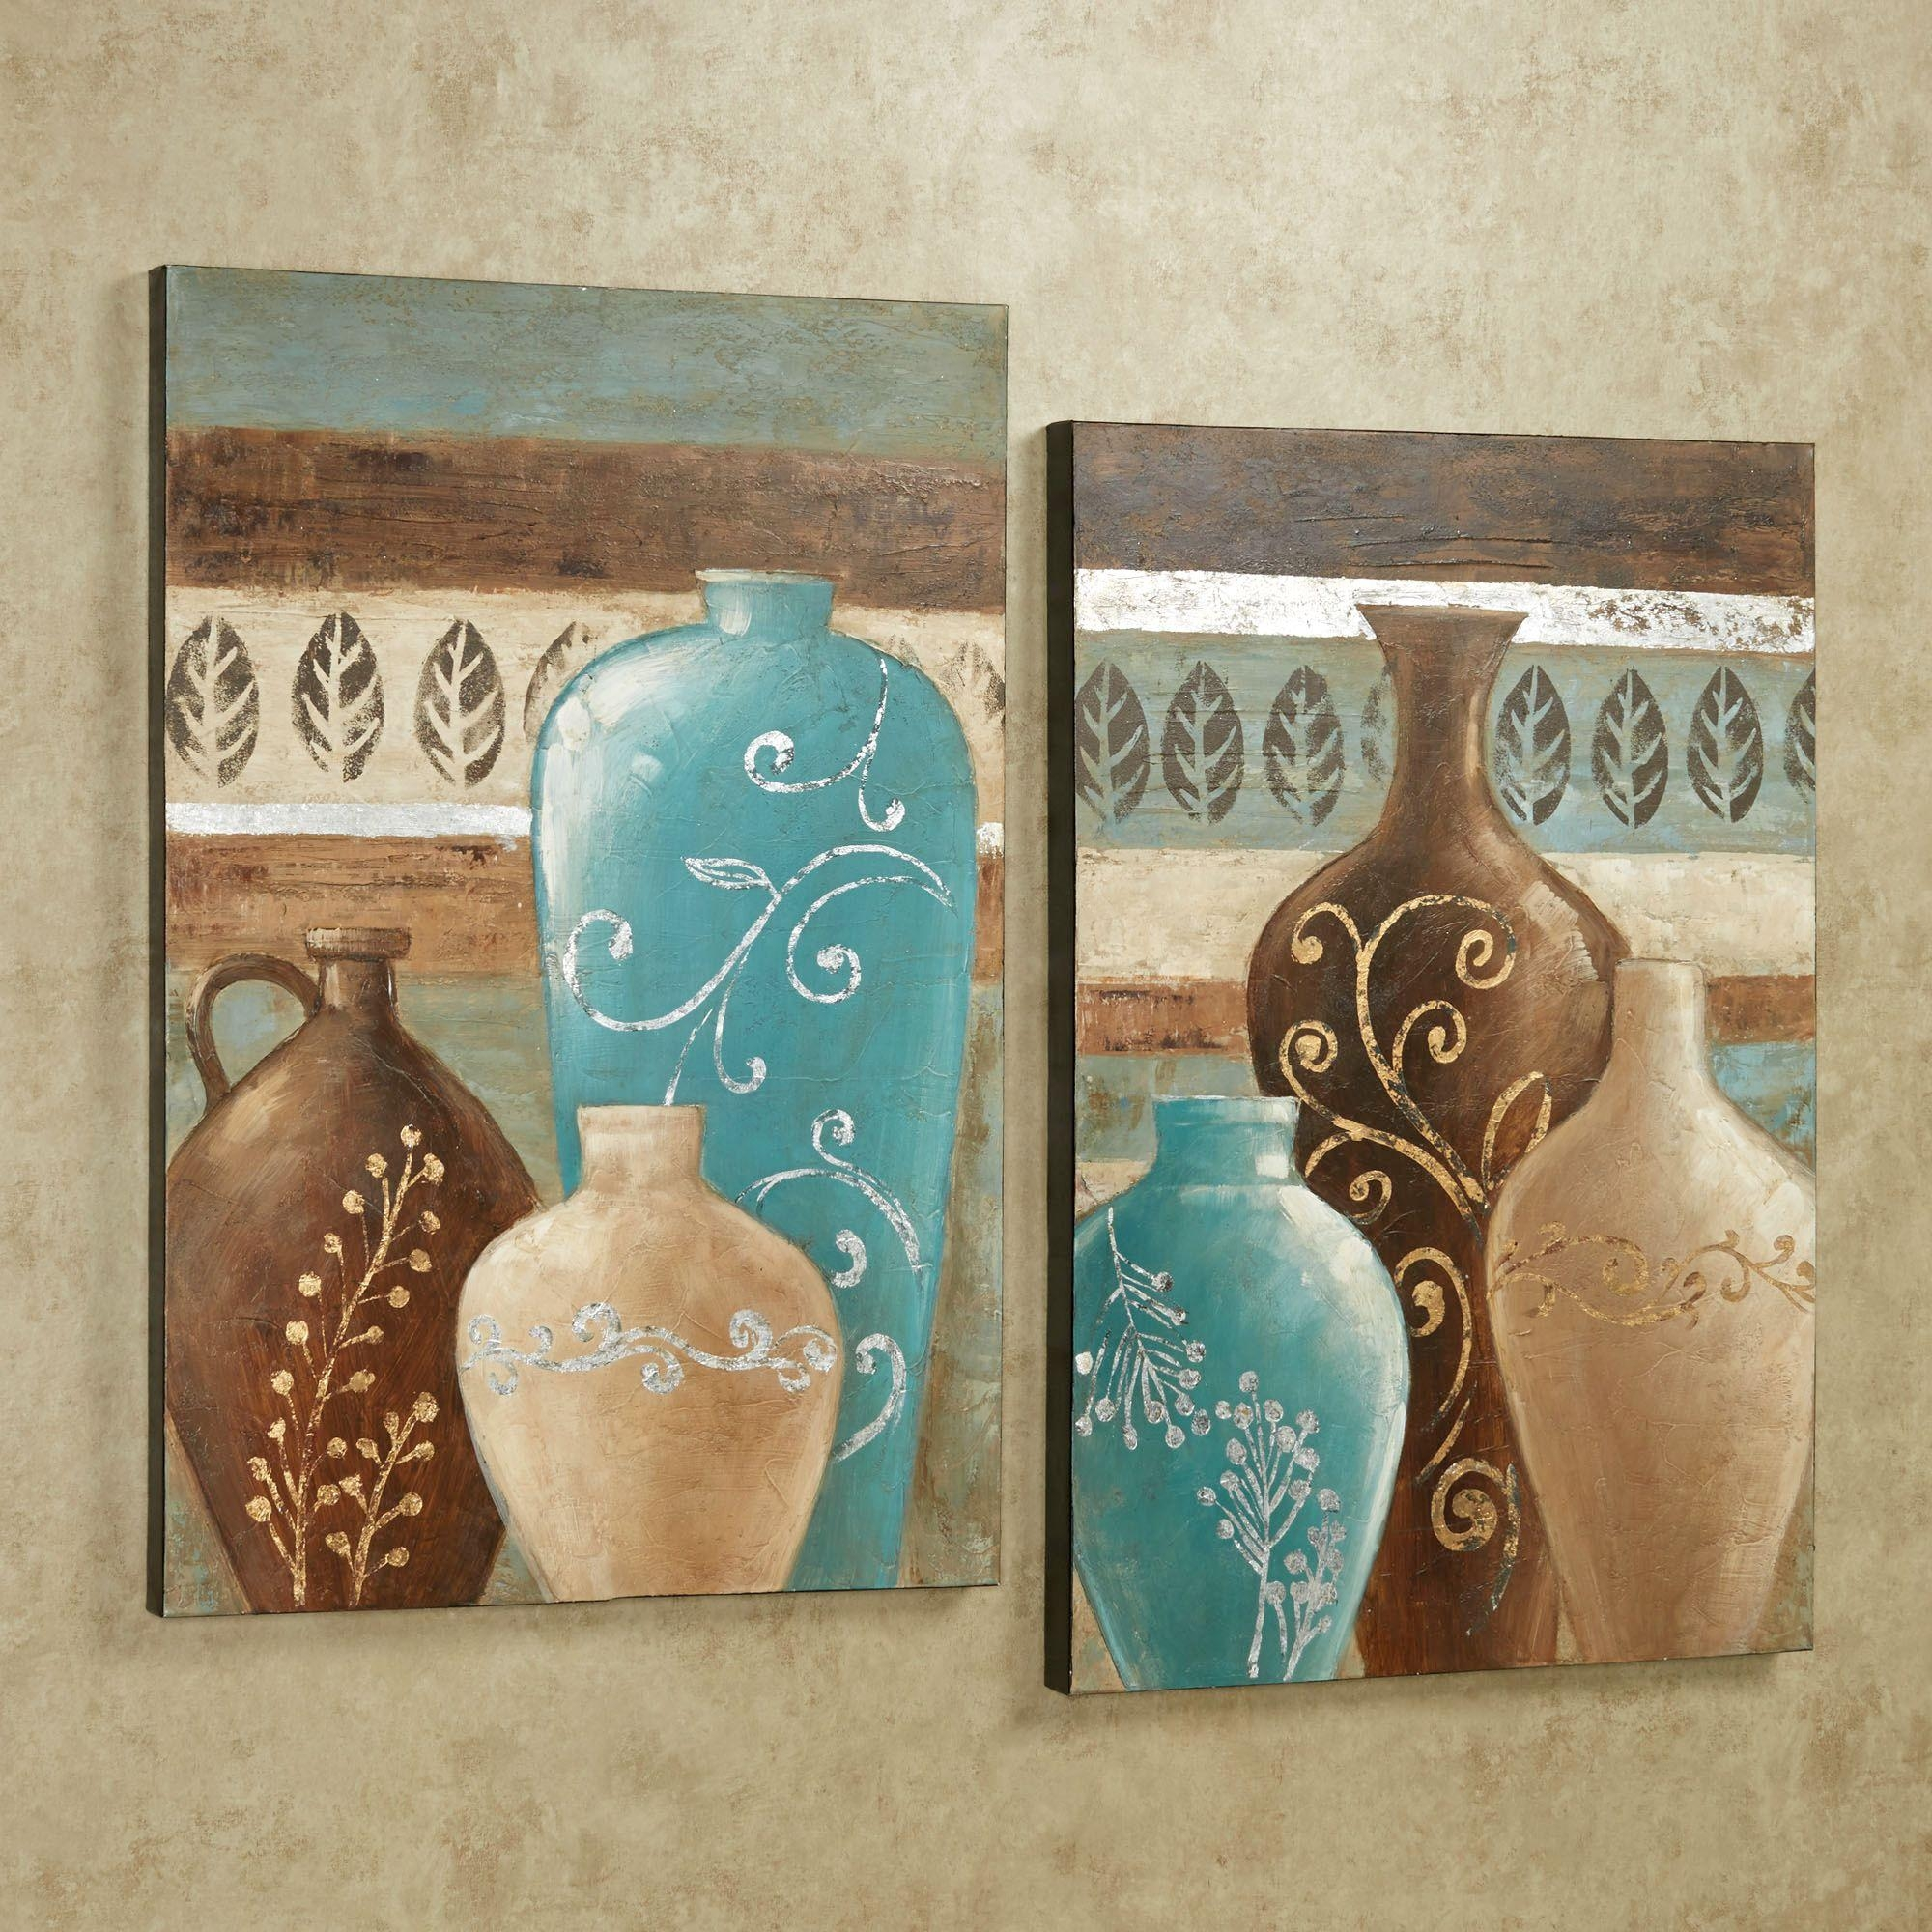 20 collection of turquoise and brown wall art wall art ideas. Black Bedroom Furniture Sets. Home Design Ideas